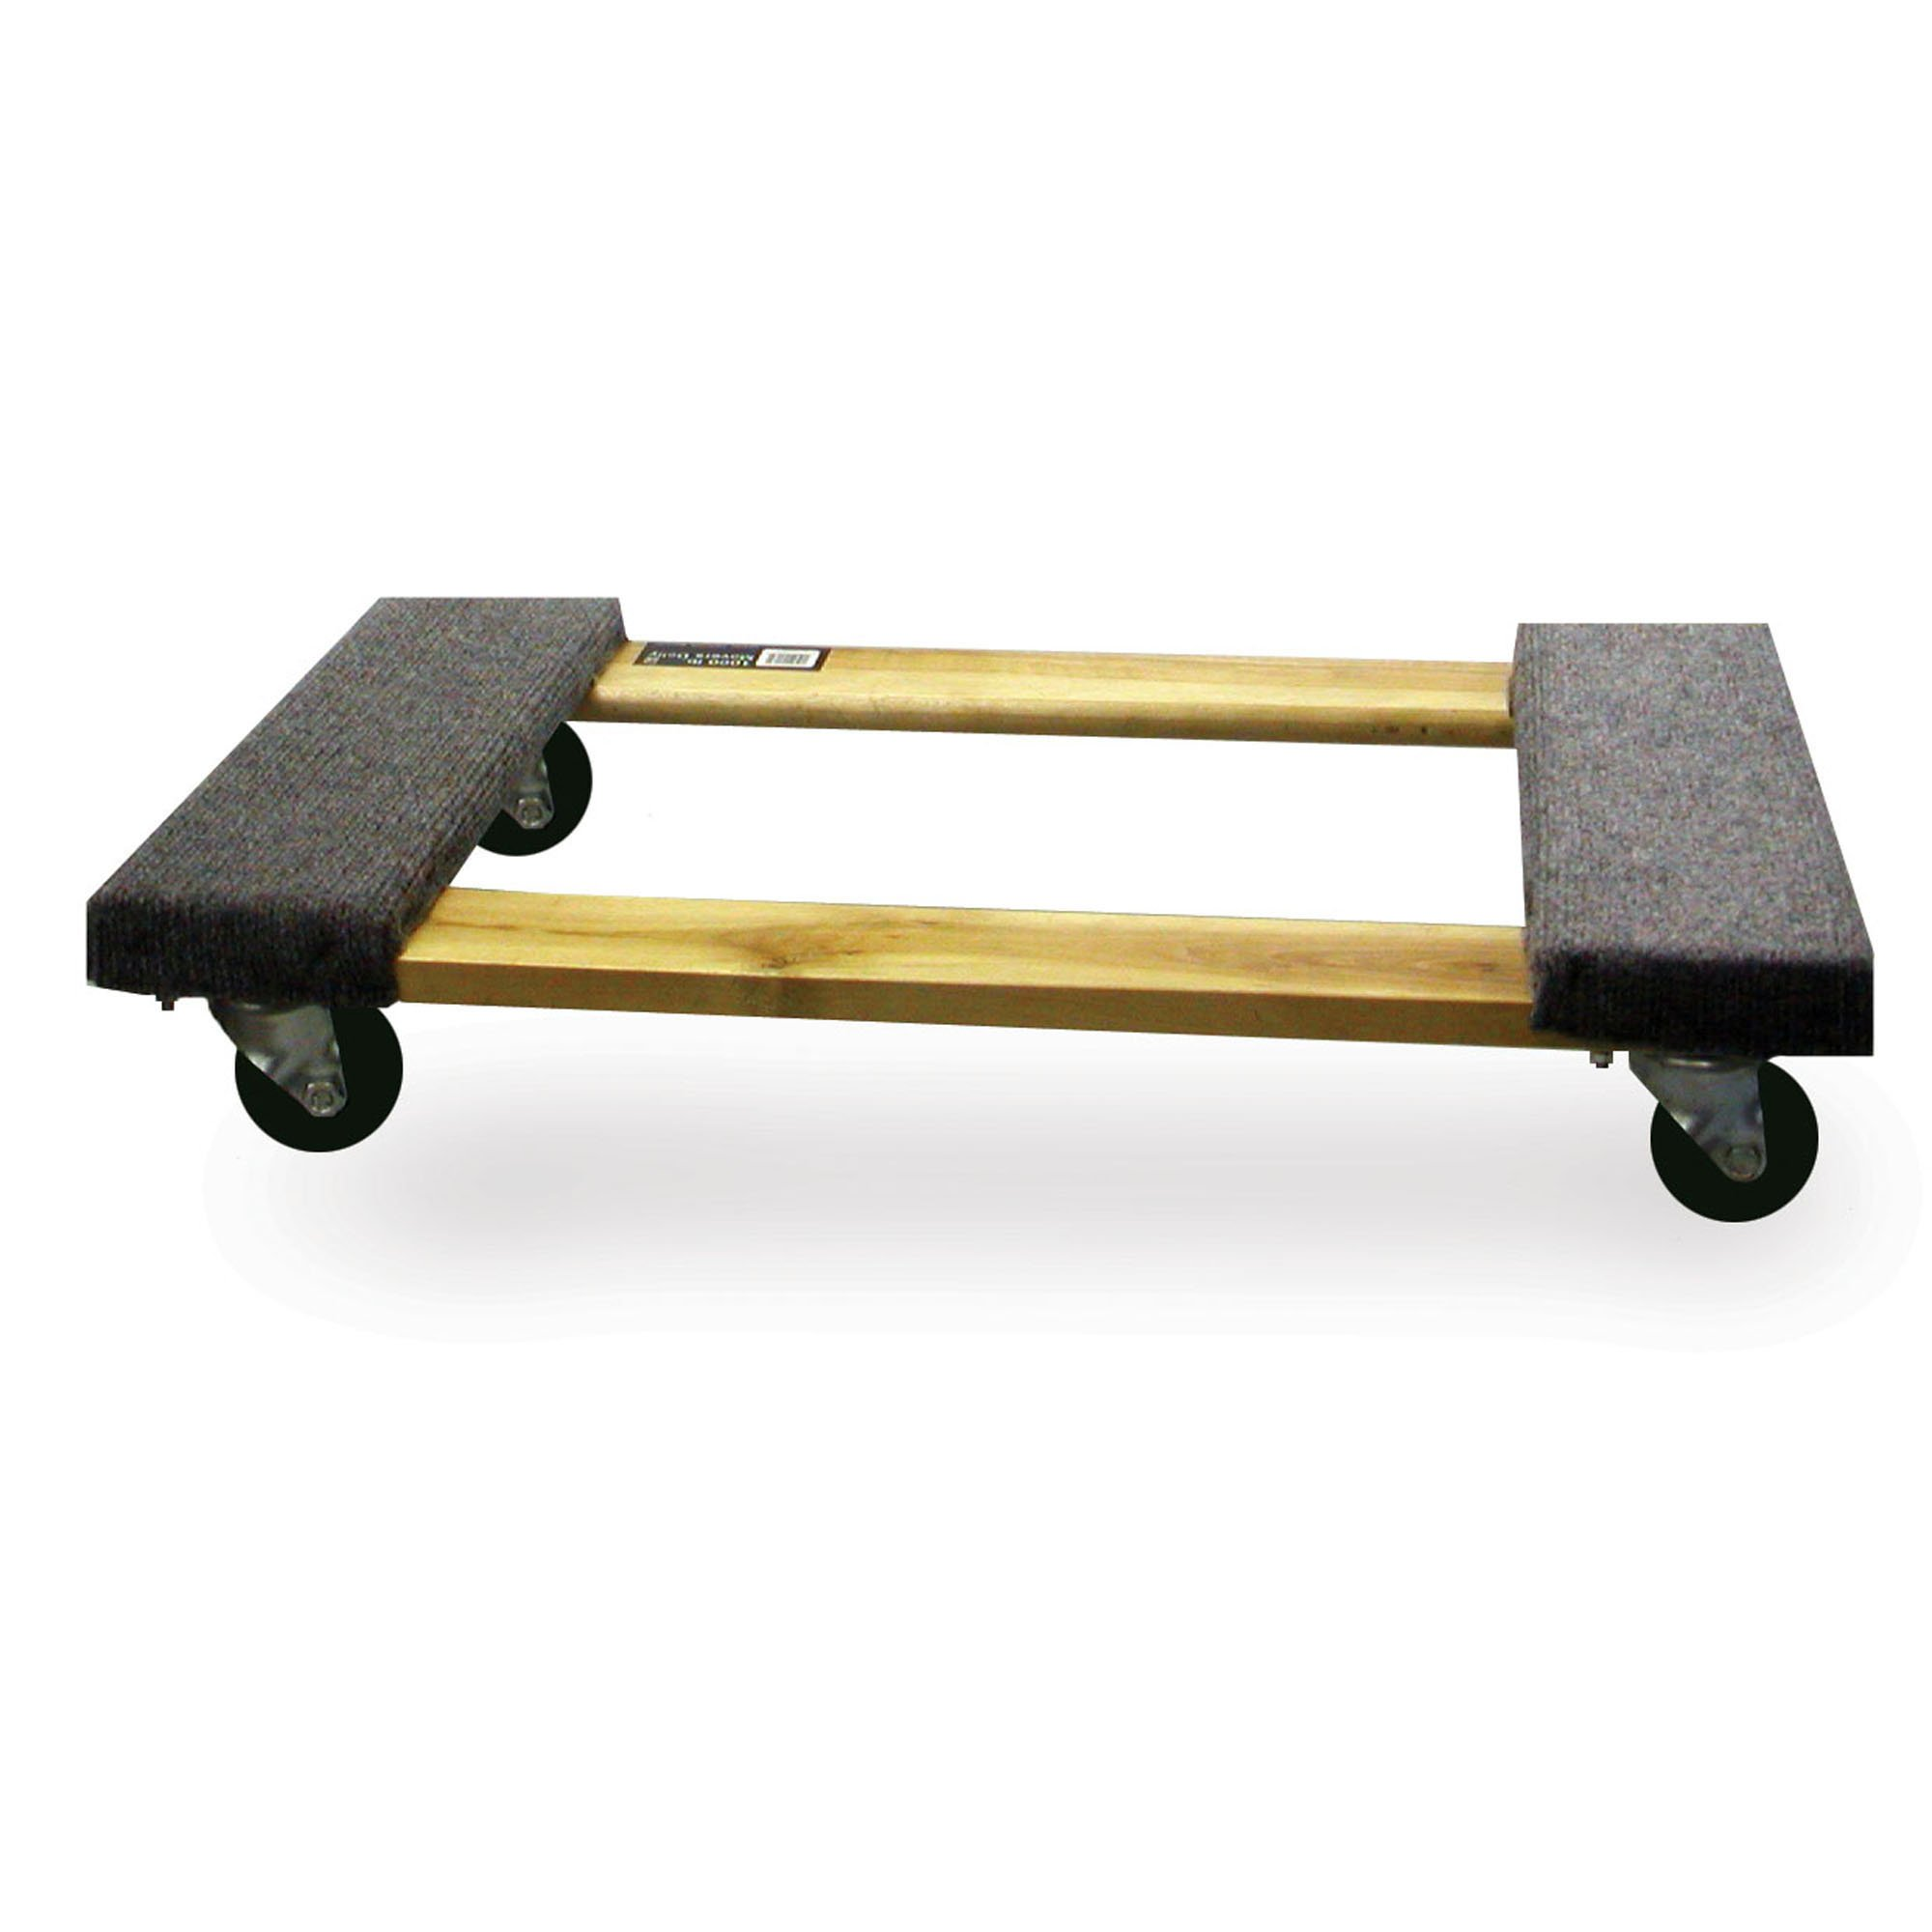 Buffalo Tools HDFDOLLY 1000-Pound Furniture Dolly by Buffalo Tools